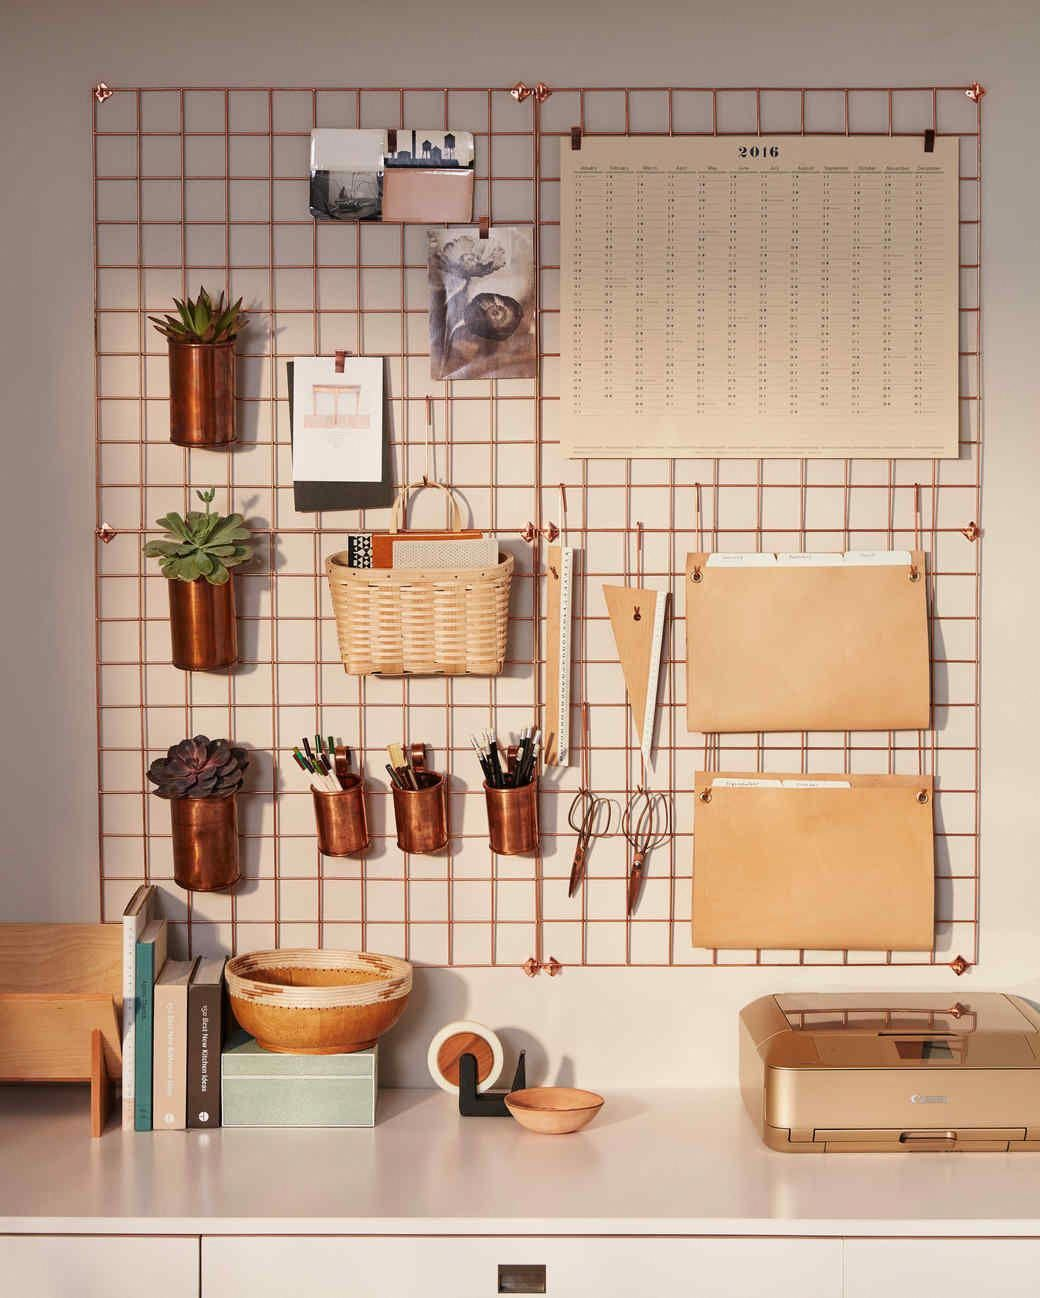 Wall Desk Organizer Urban Outfitters Copper Wire Wall Square Grid Lostine Copper Cups And Basketville Upscale Mail Basket Wallh Wall Desk Room Decor Decor